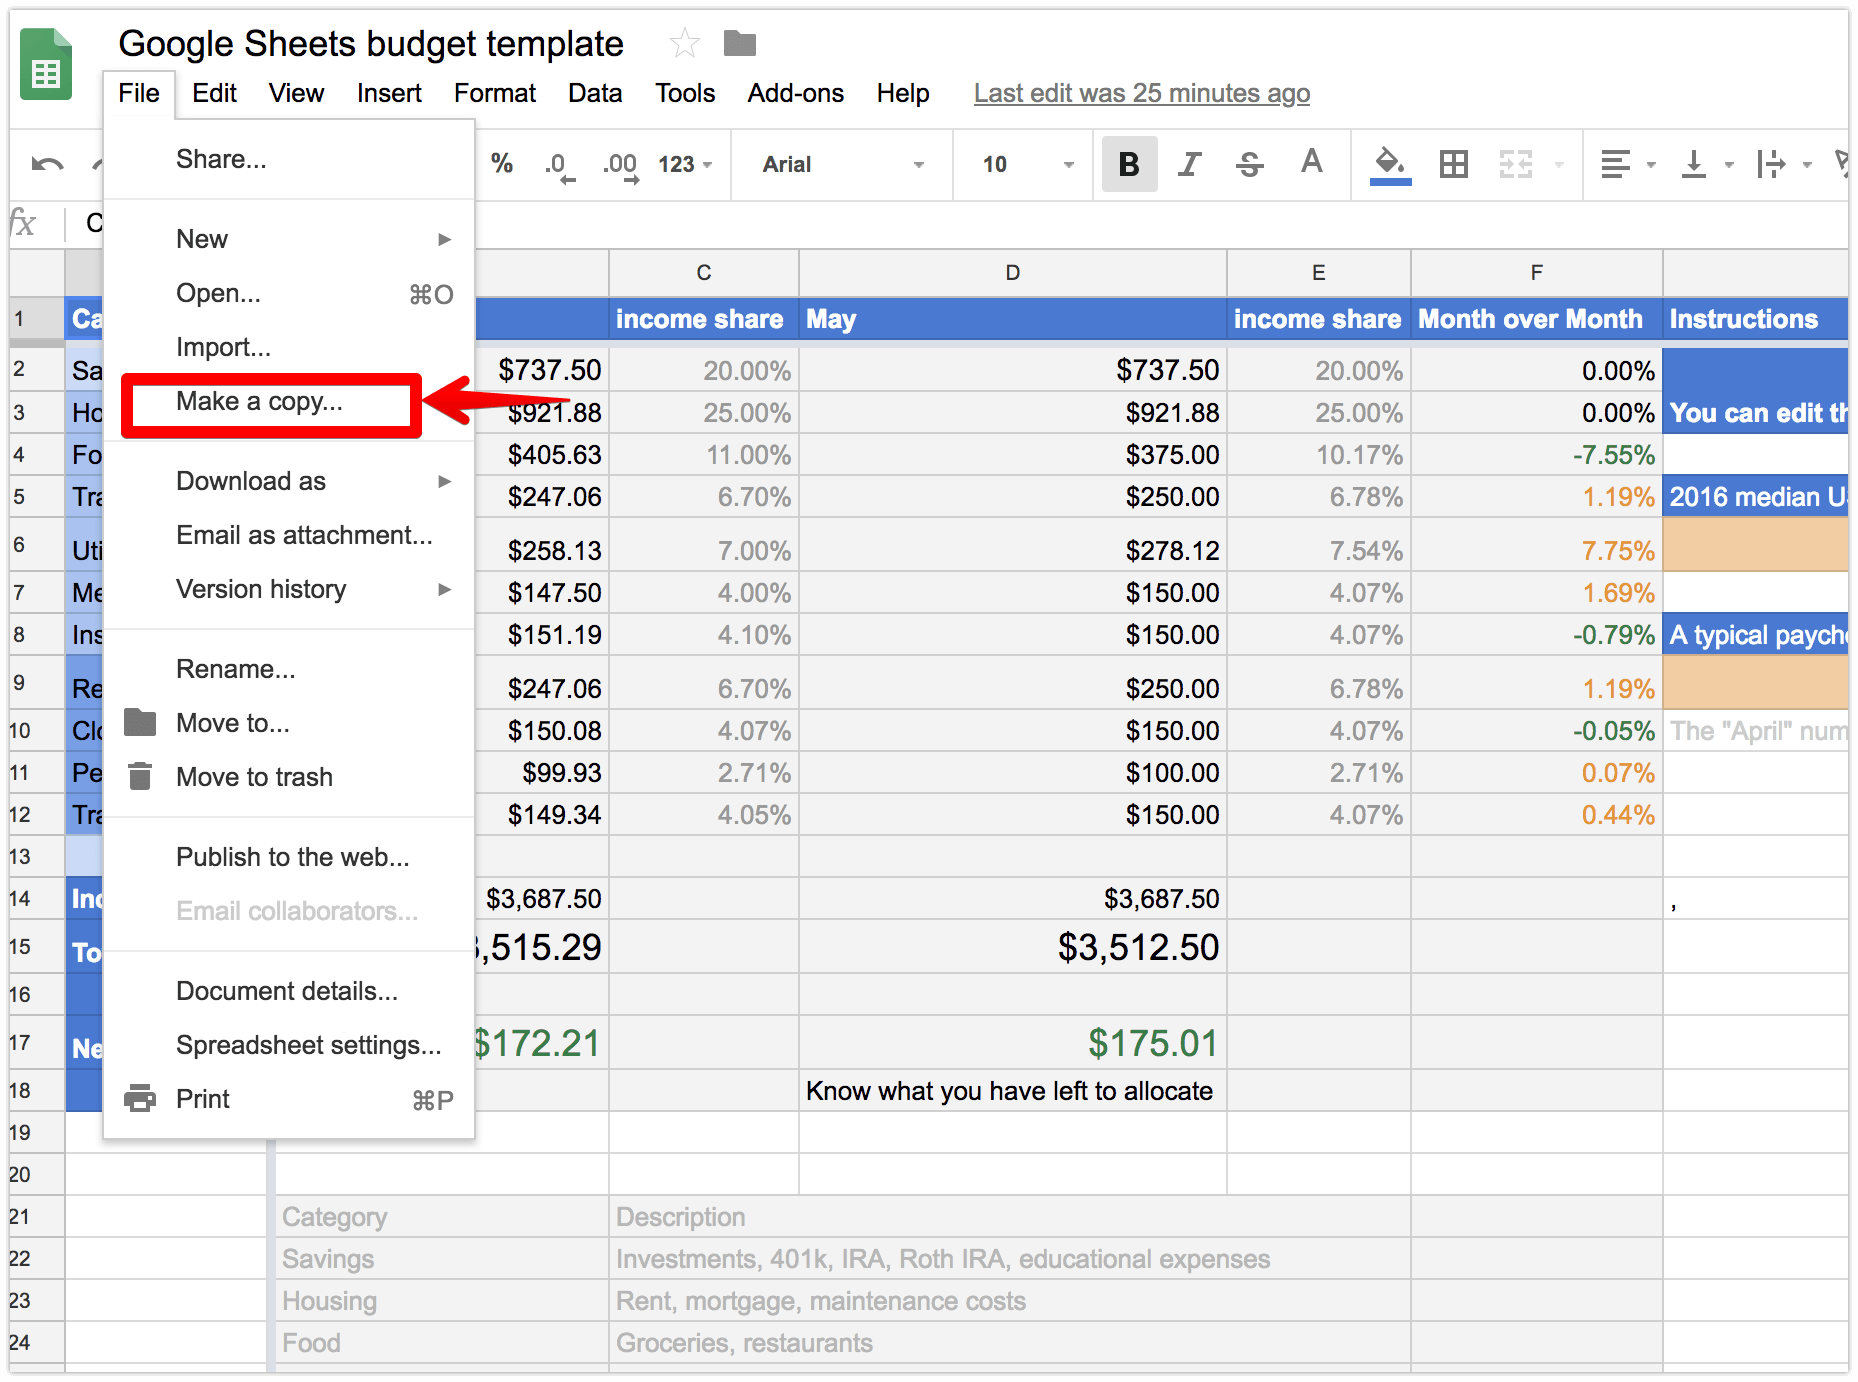 screenshot of template budget google sheets